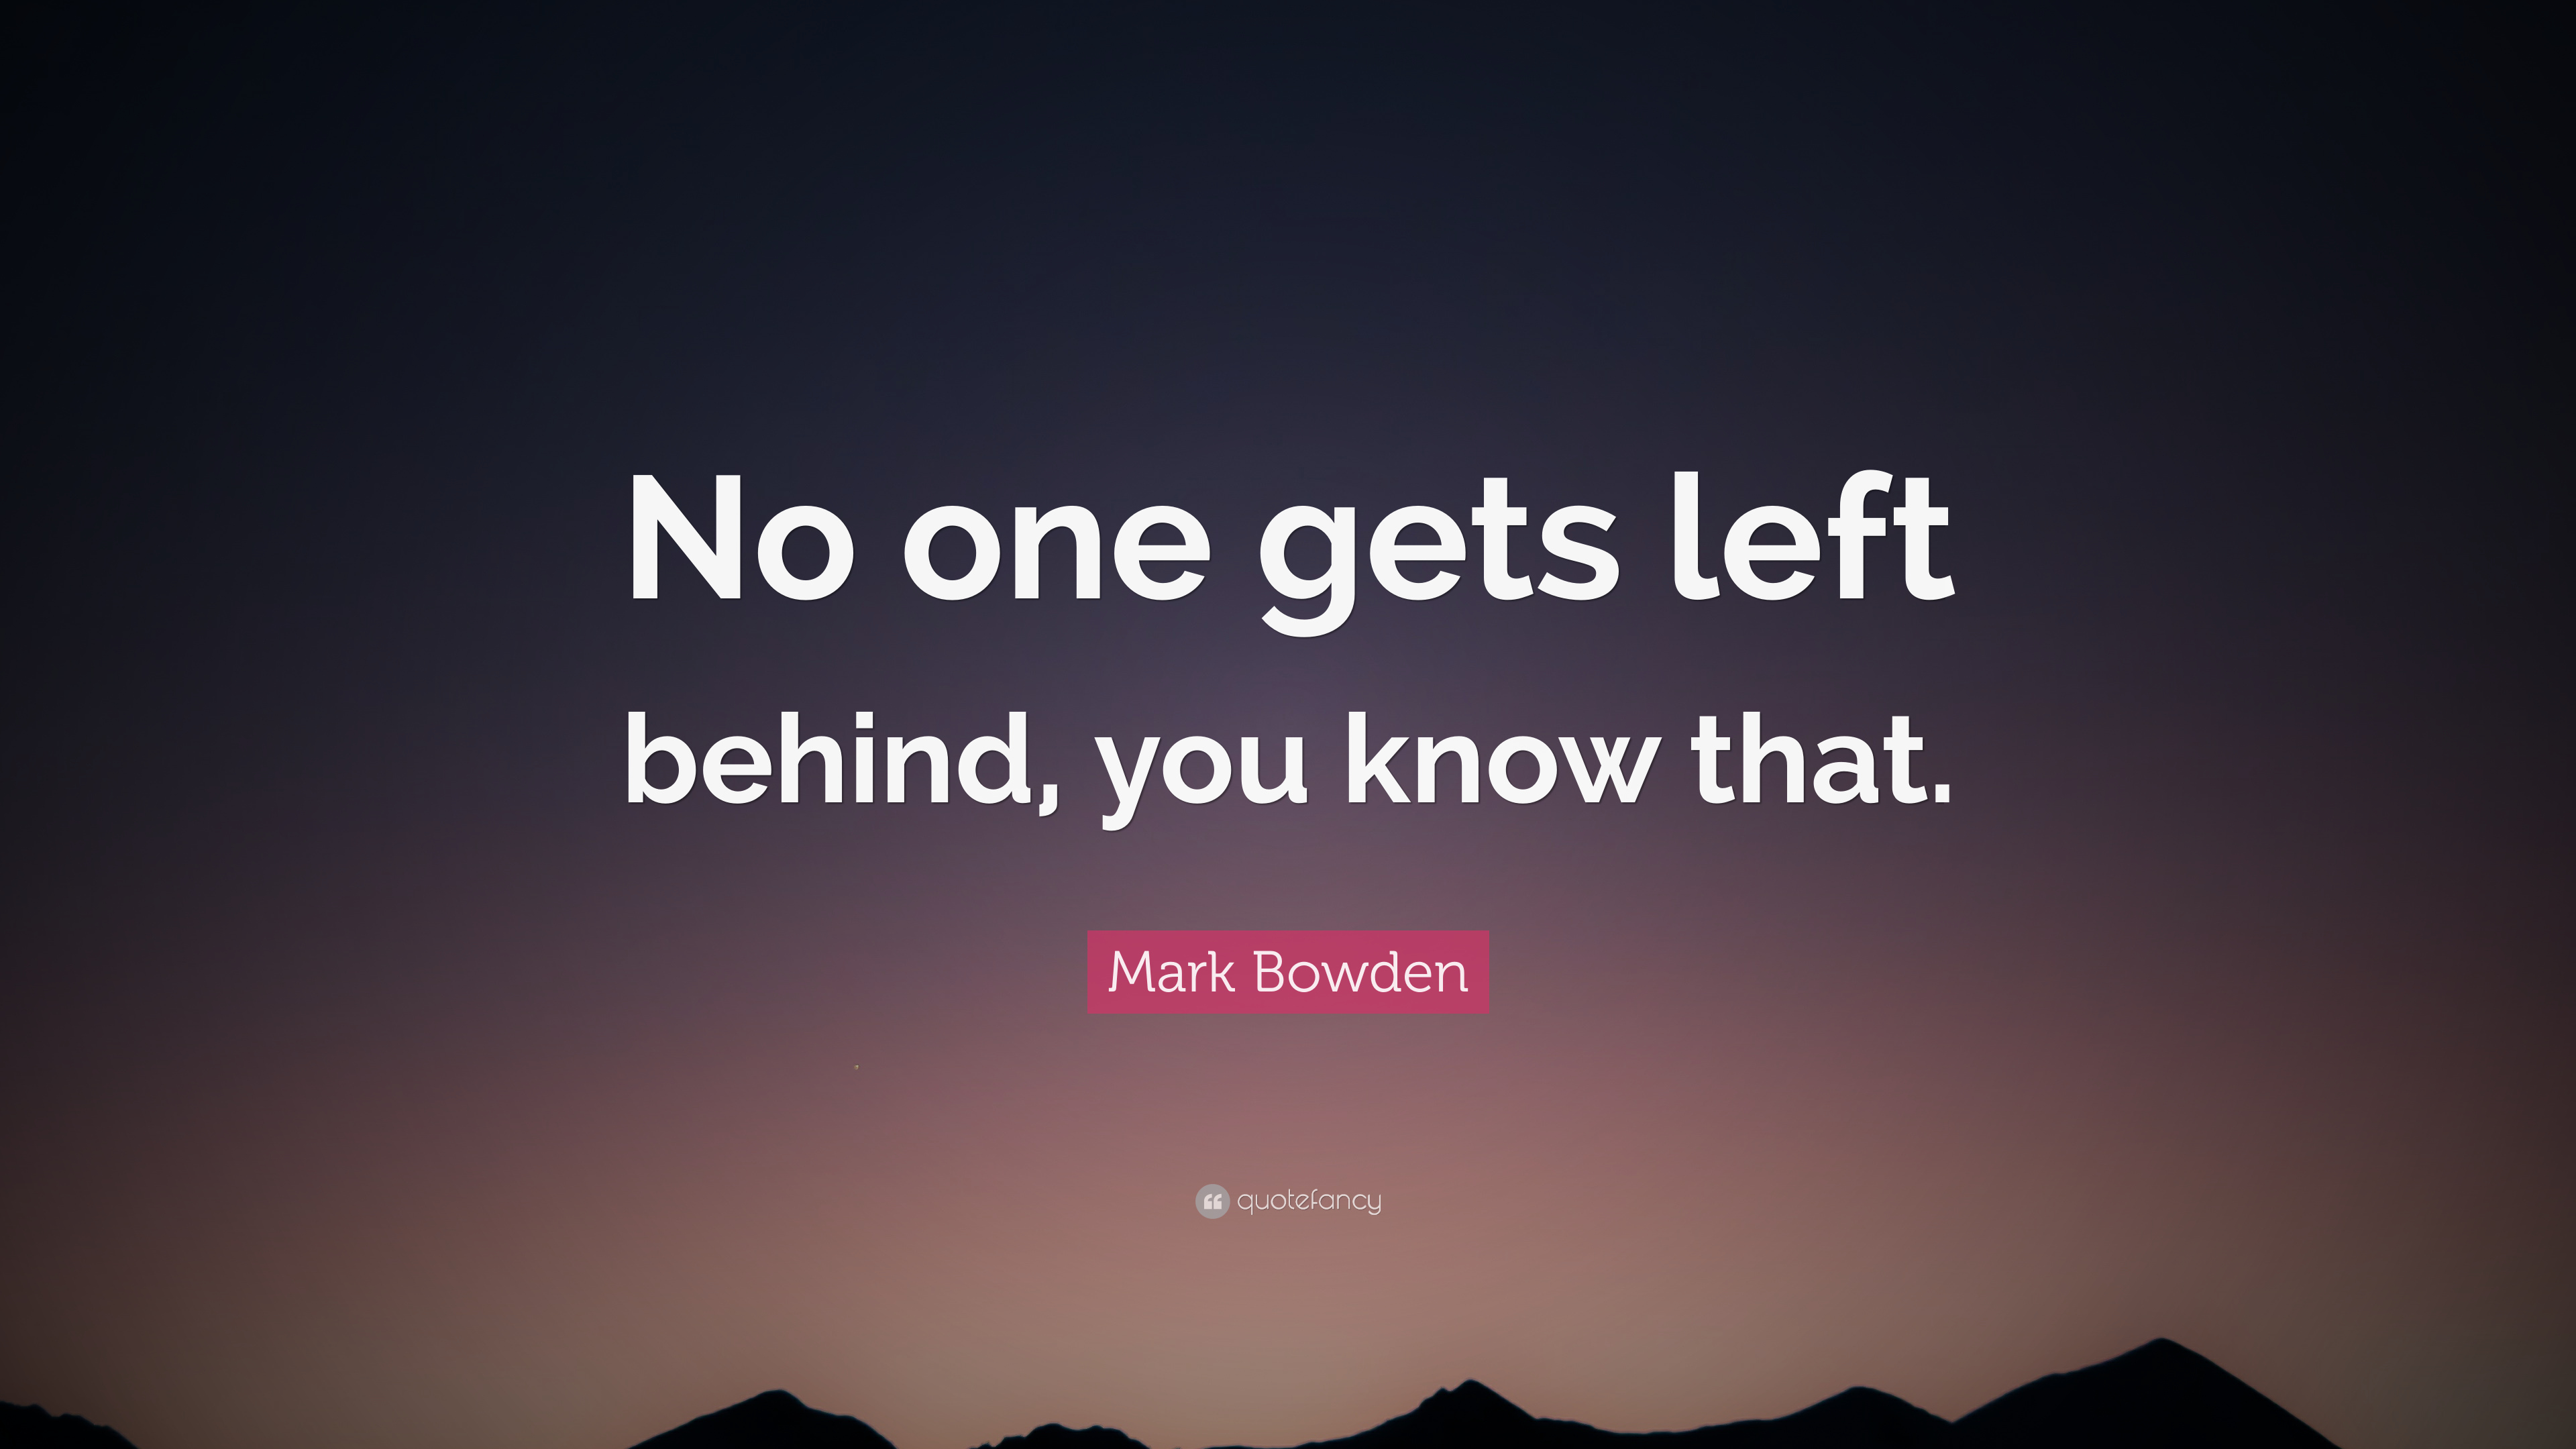 Mark Bowden Quotes 4 Wallpapers Quotefancy